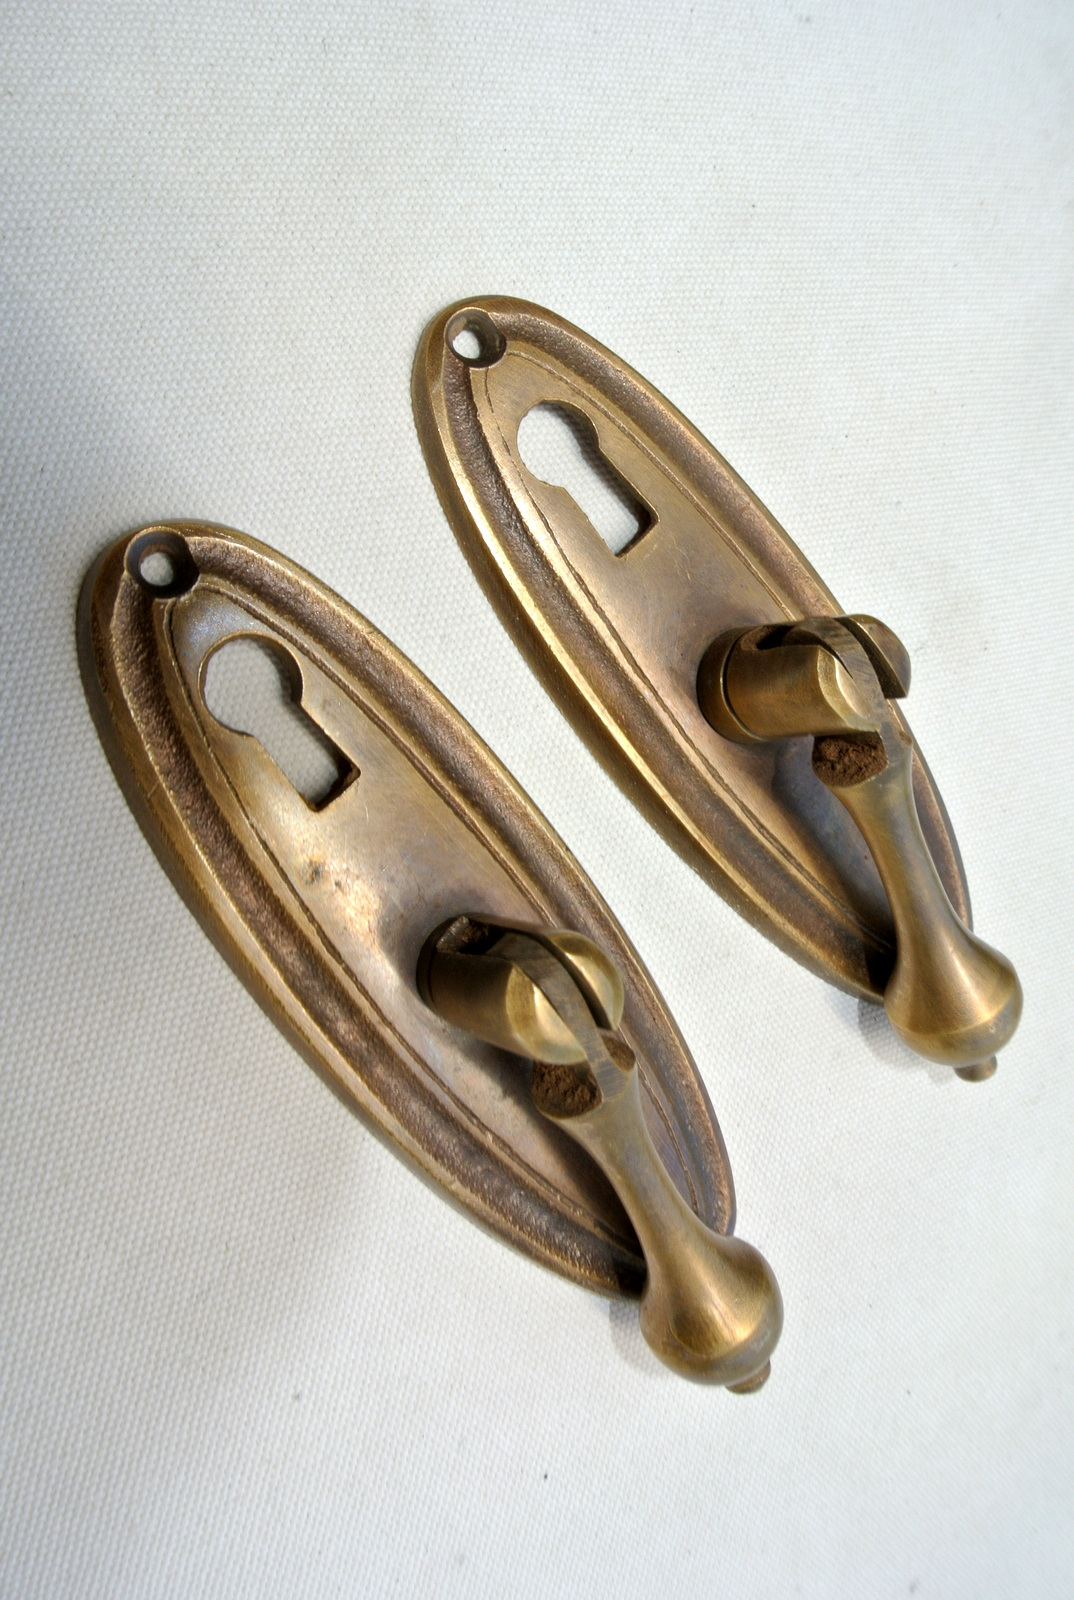 2 Pulls Drops Handles Antique Style Solid Brass Vintage